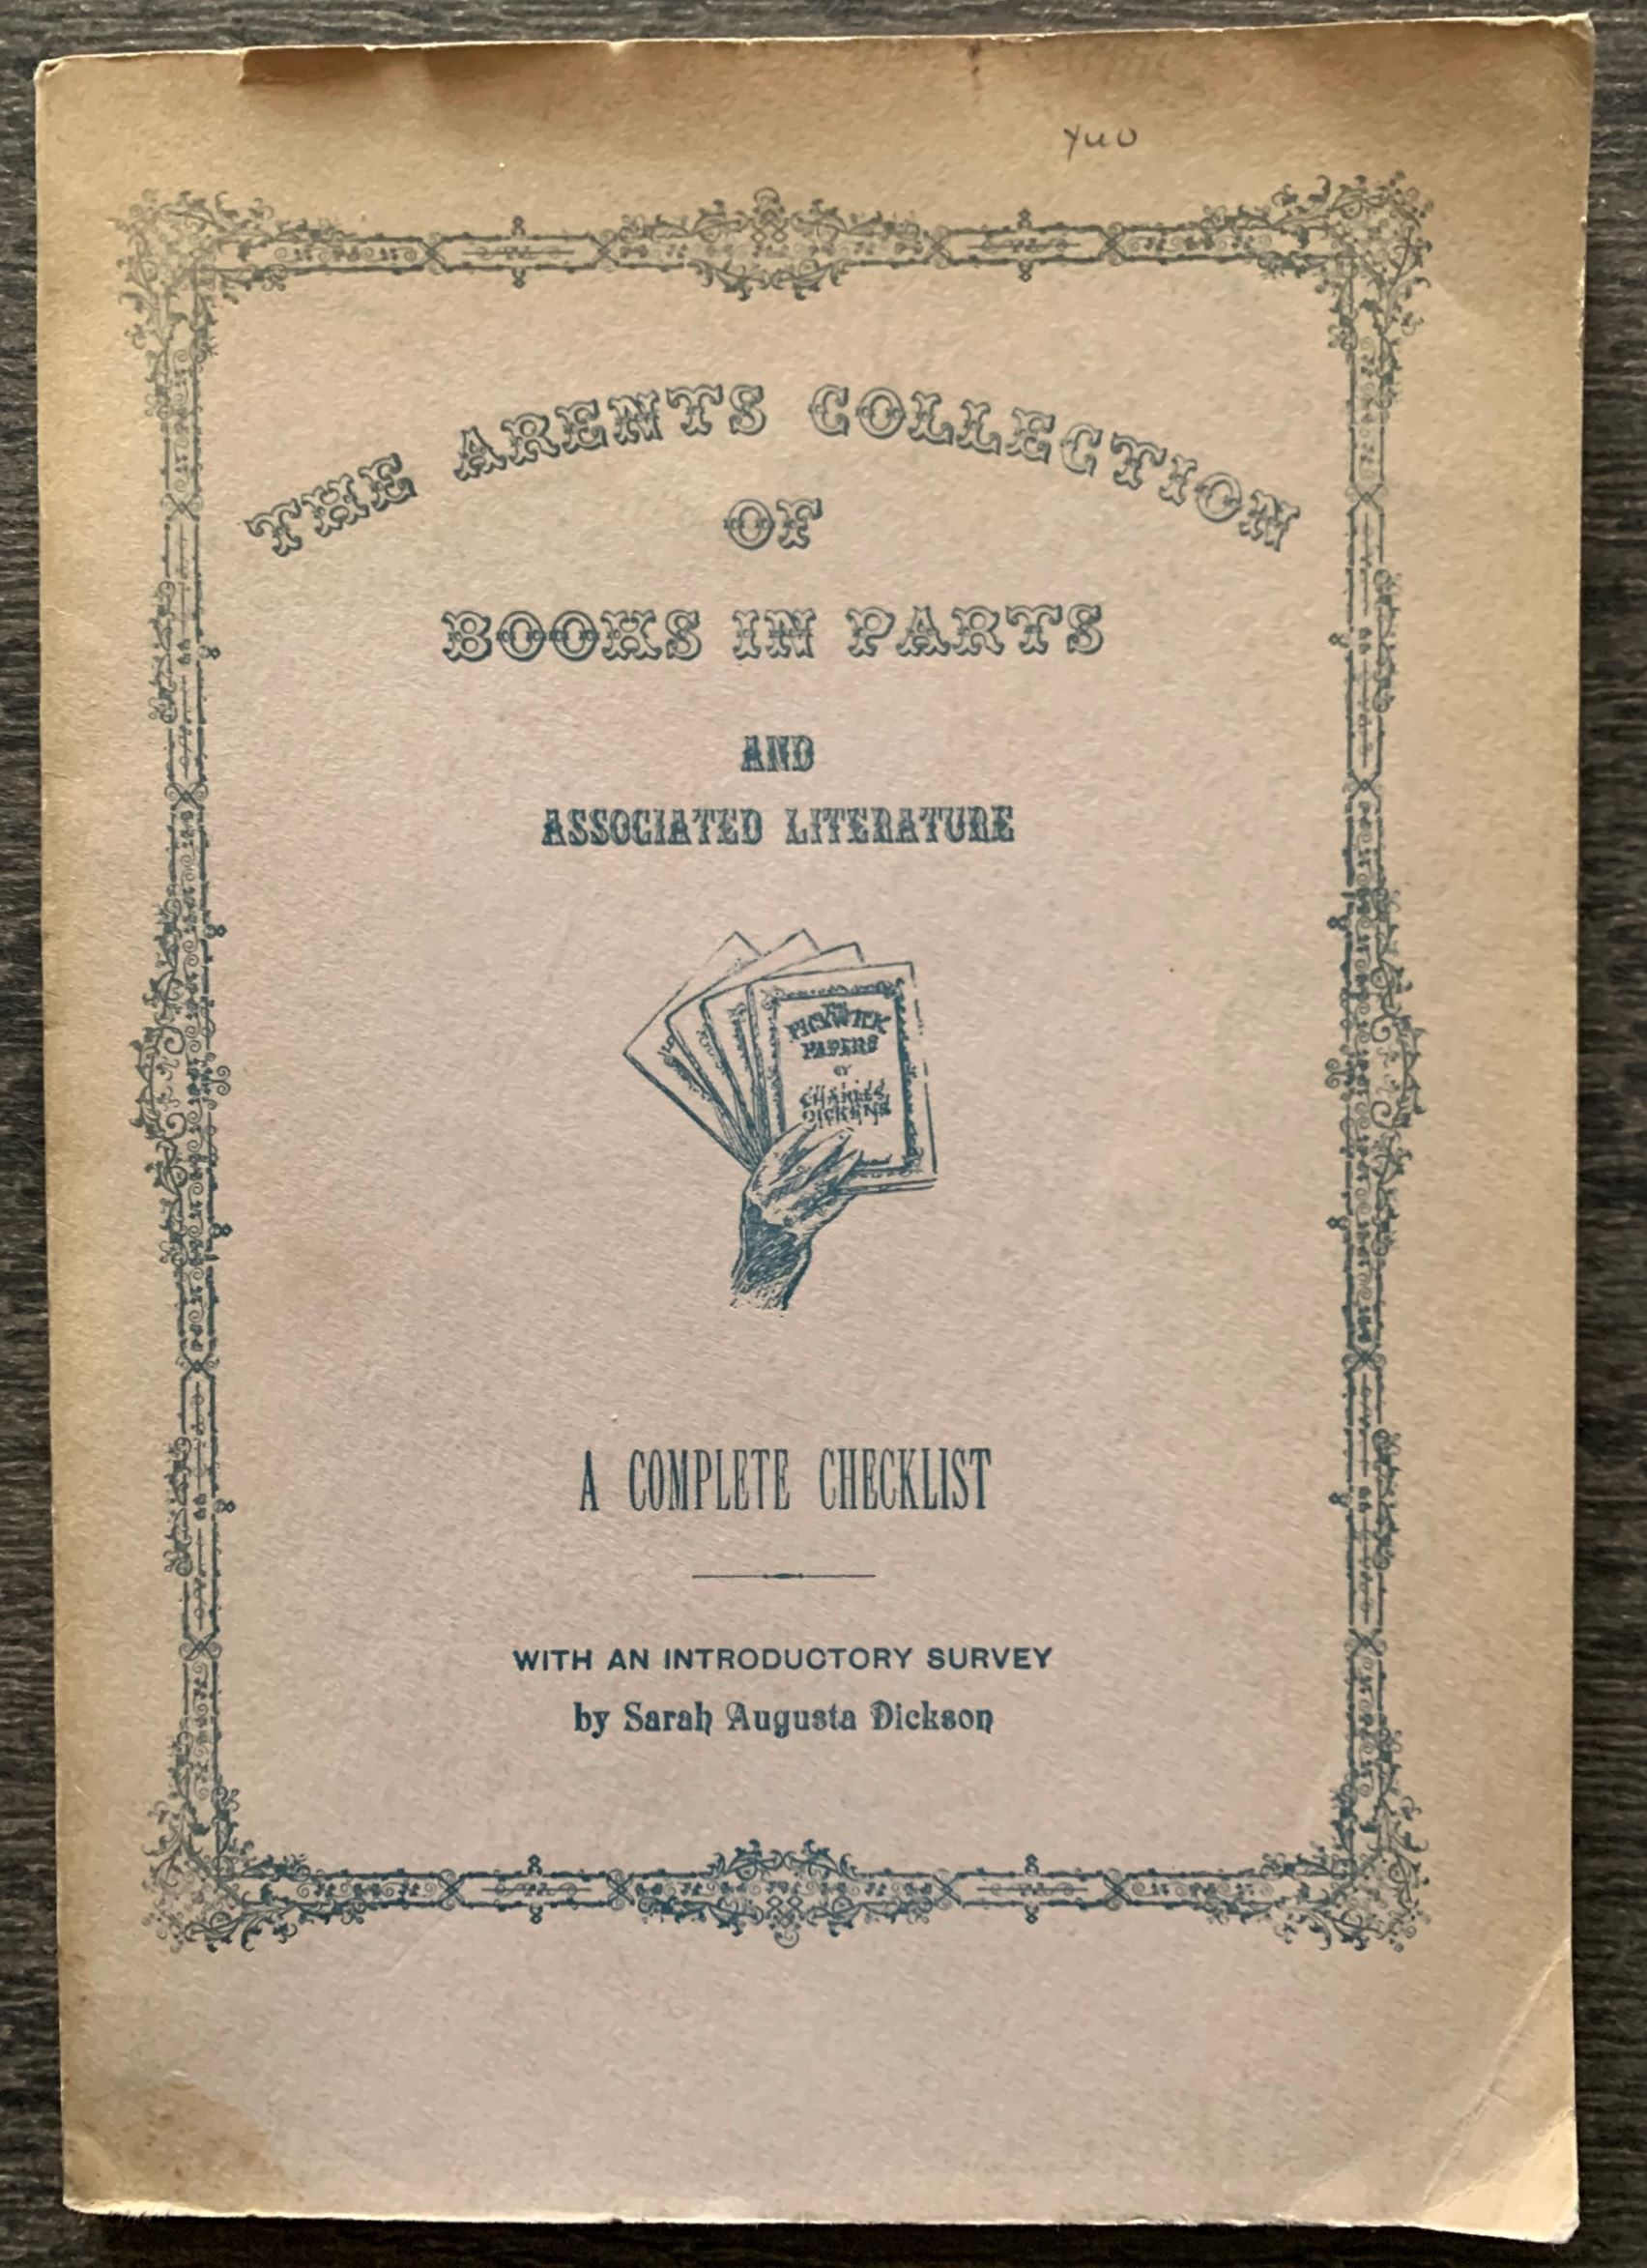 Image for The Arents Collection of Books in Parts and Associated Literature: A Complete Checklist.